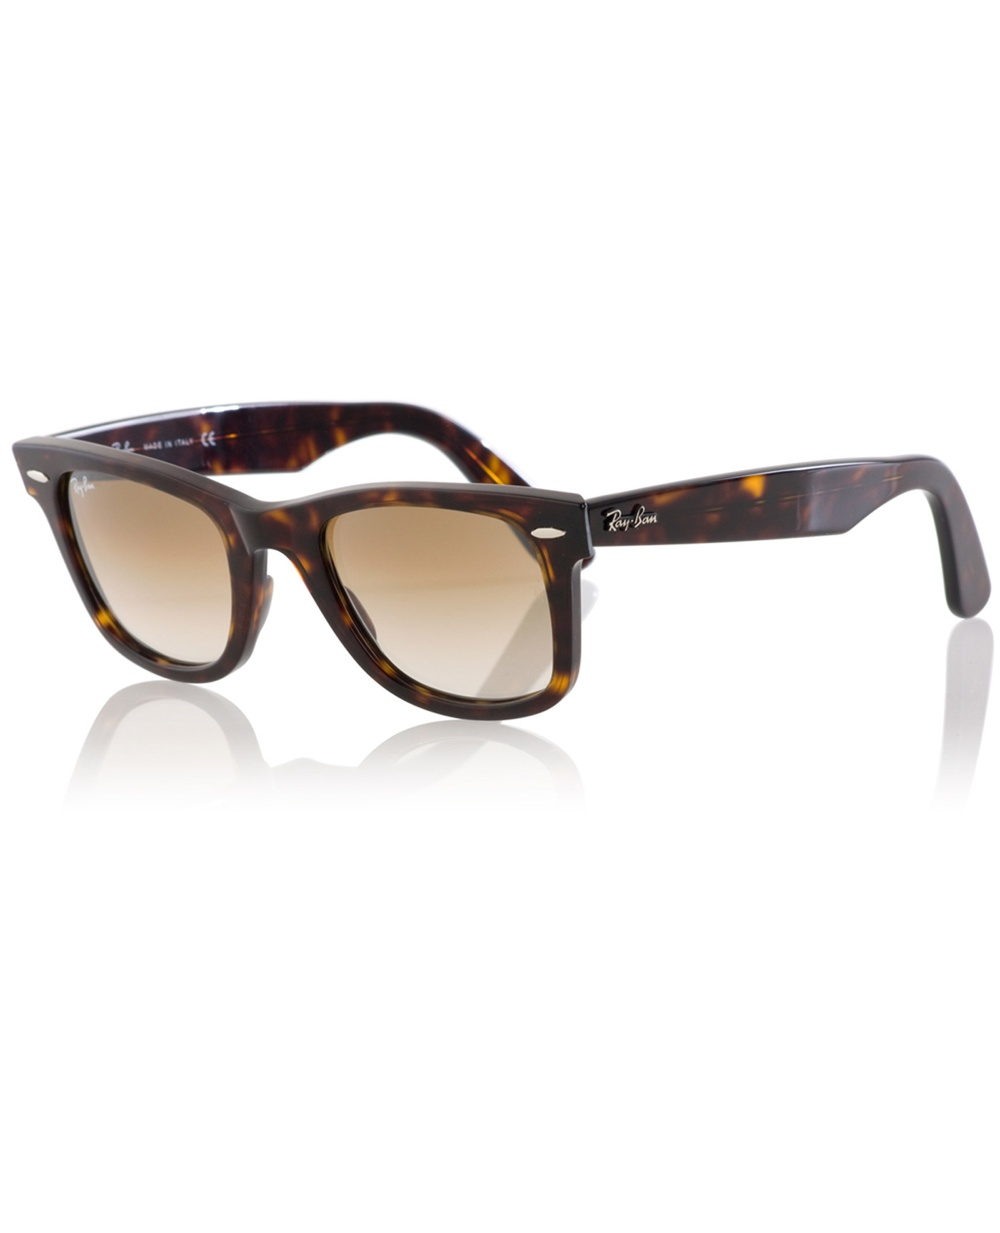 ray ban mens sunglasses wayfarer  mens sunglasses ray ban wayfarer